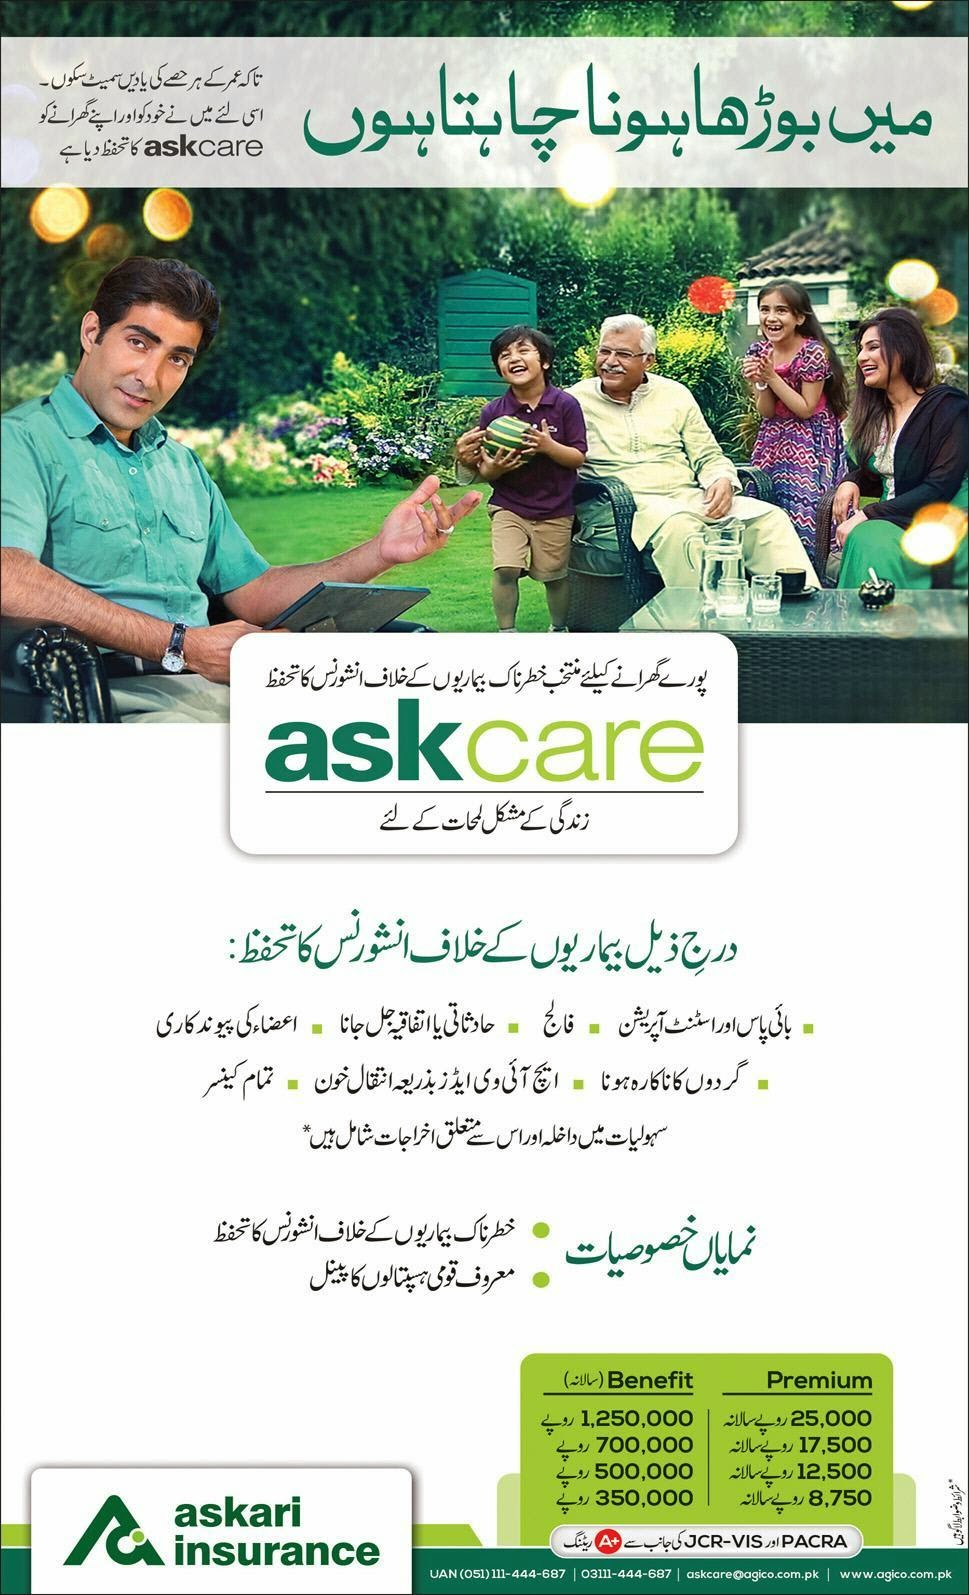 Askari Insurance | askcare in Pakistan